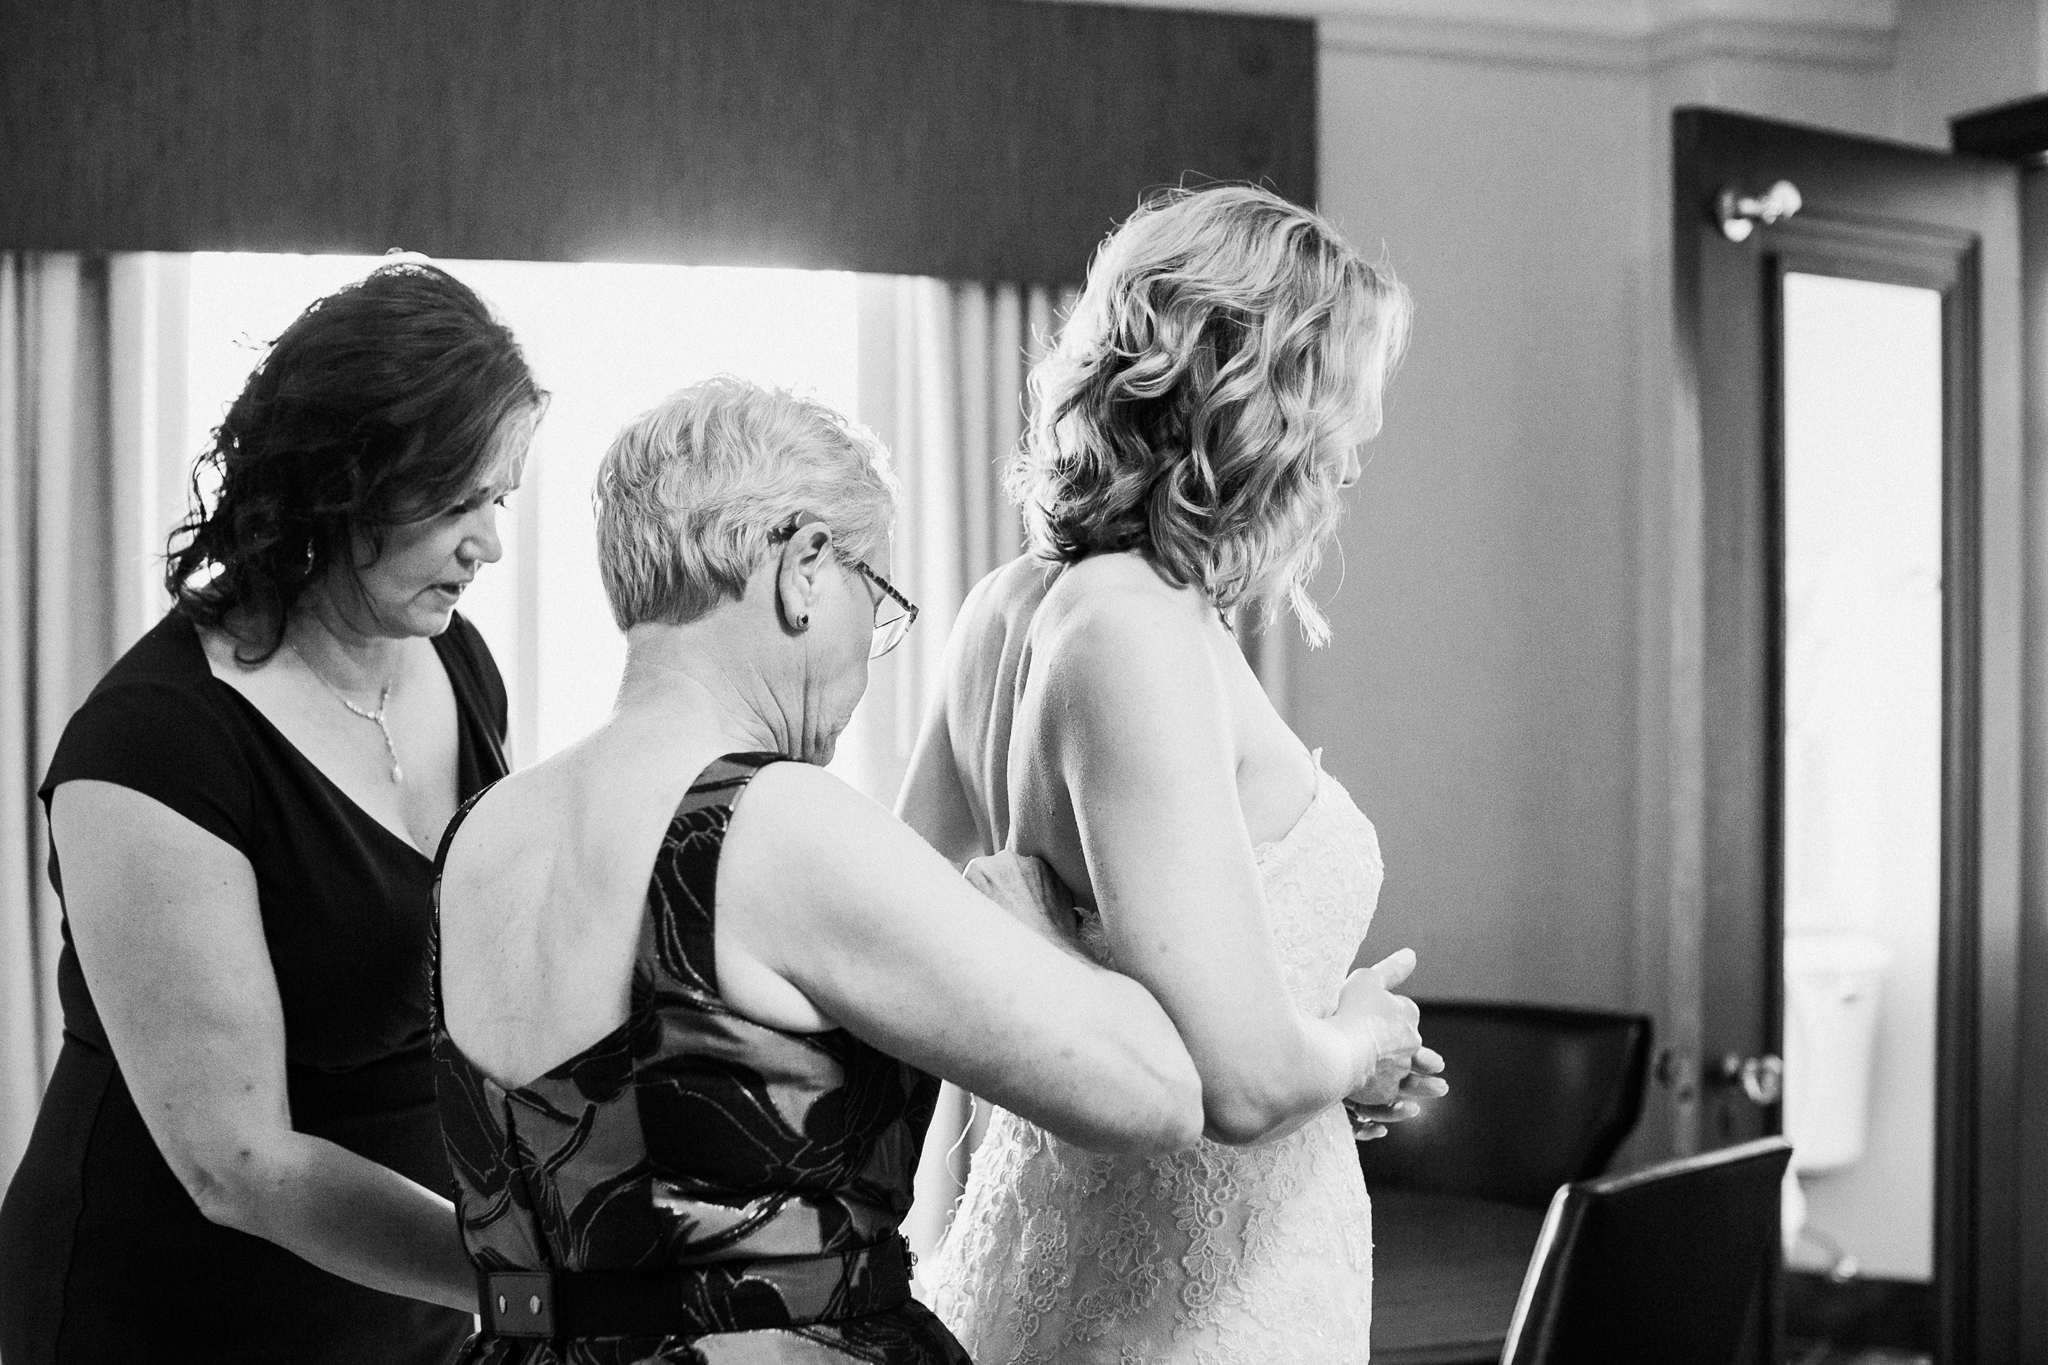 hotel_baker_st_charles_IL_wedding_photographer_0004.jpg